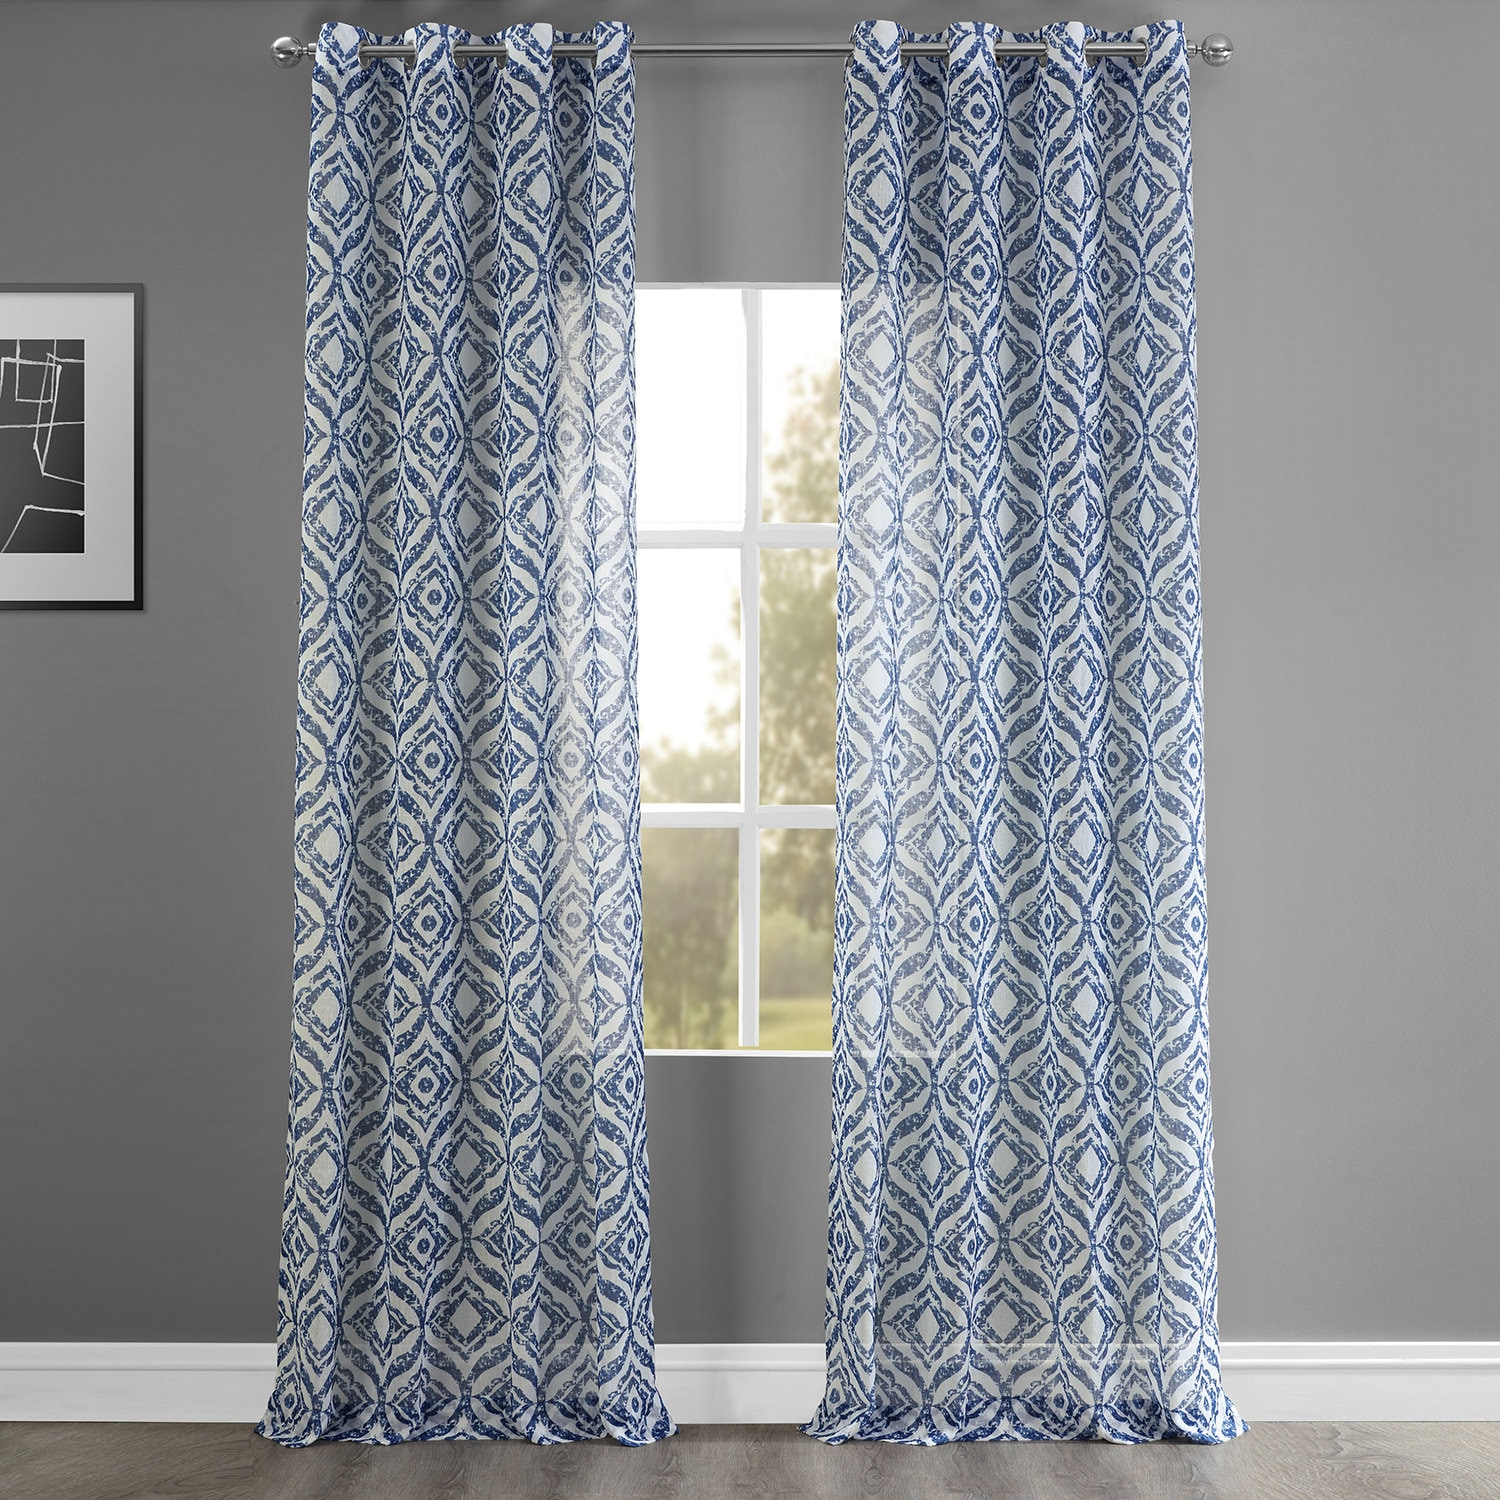 Plaza Blue Grommet Printed Faux Linen Sheer Curtain